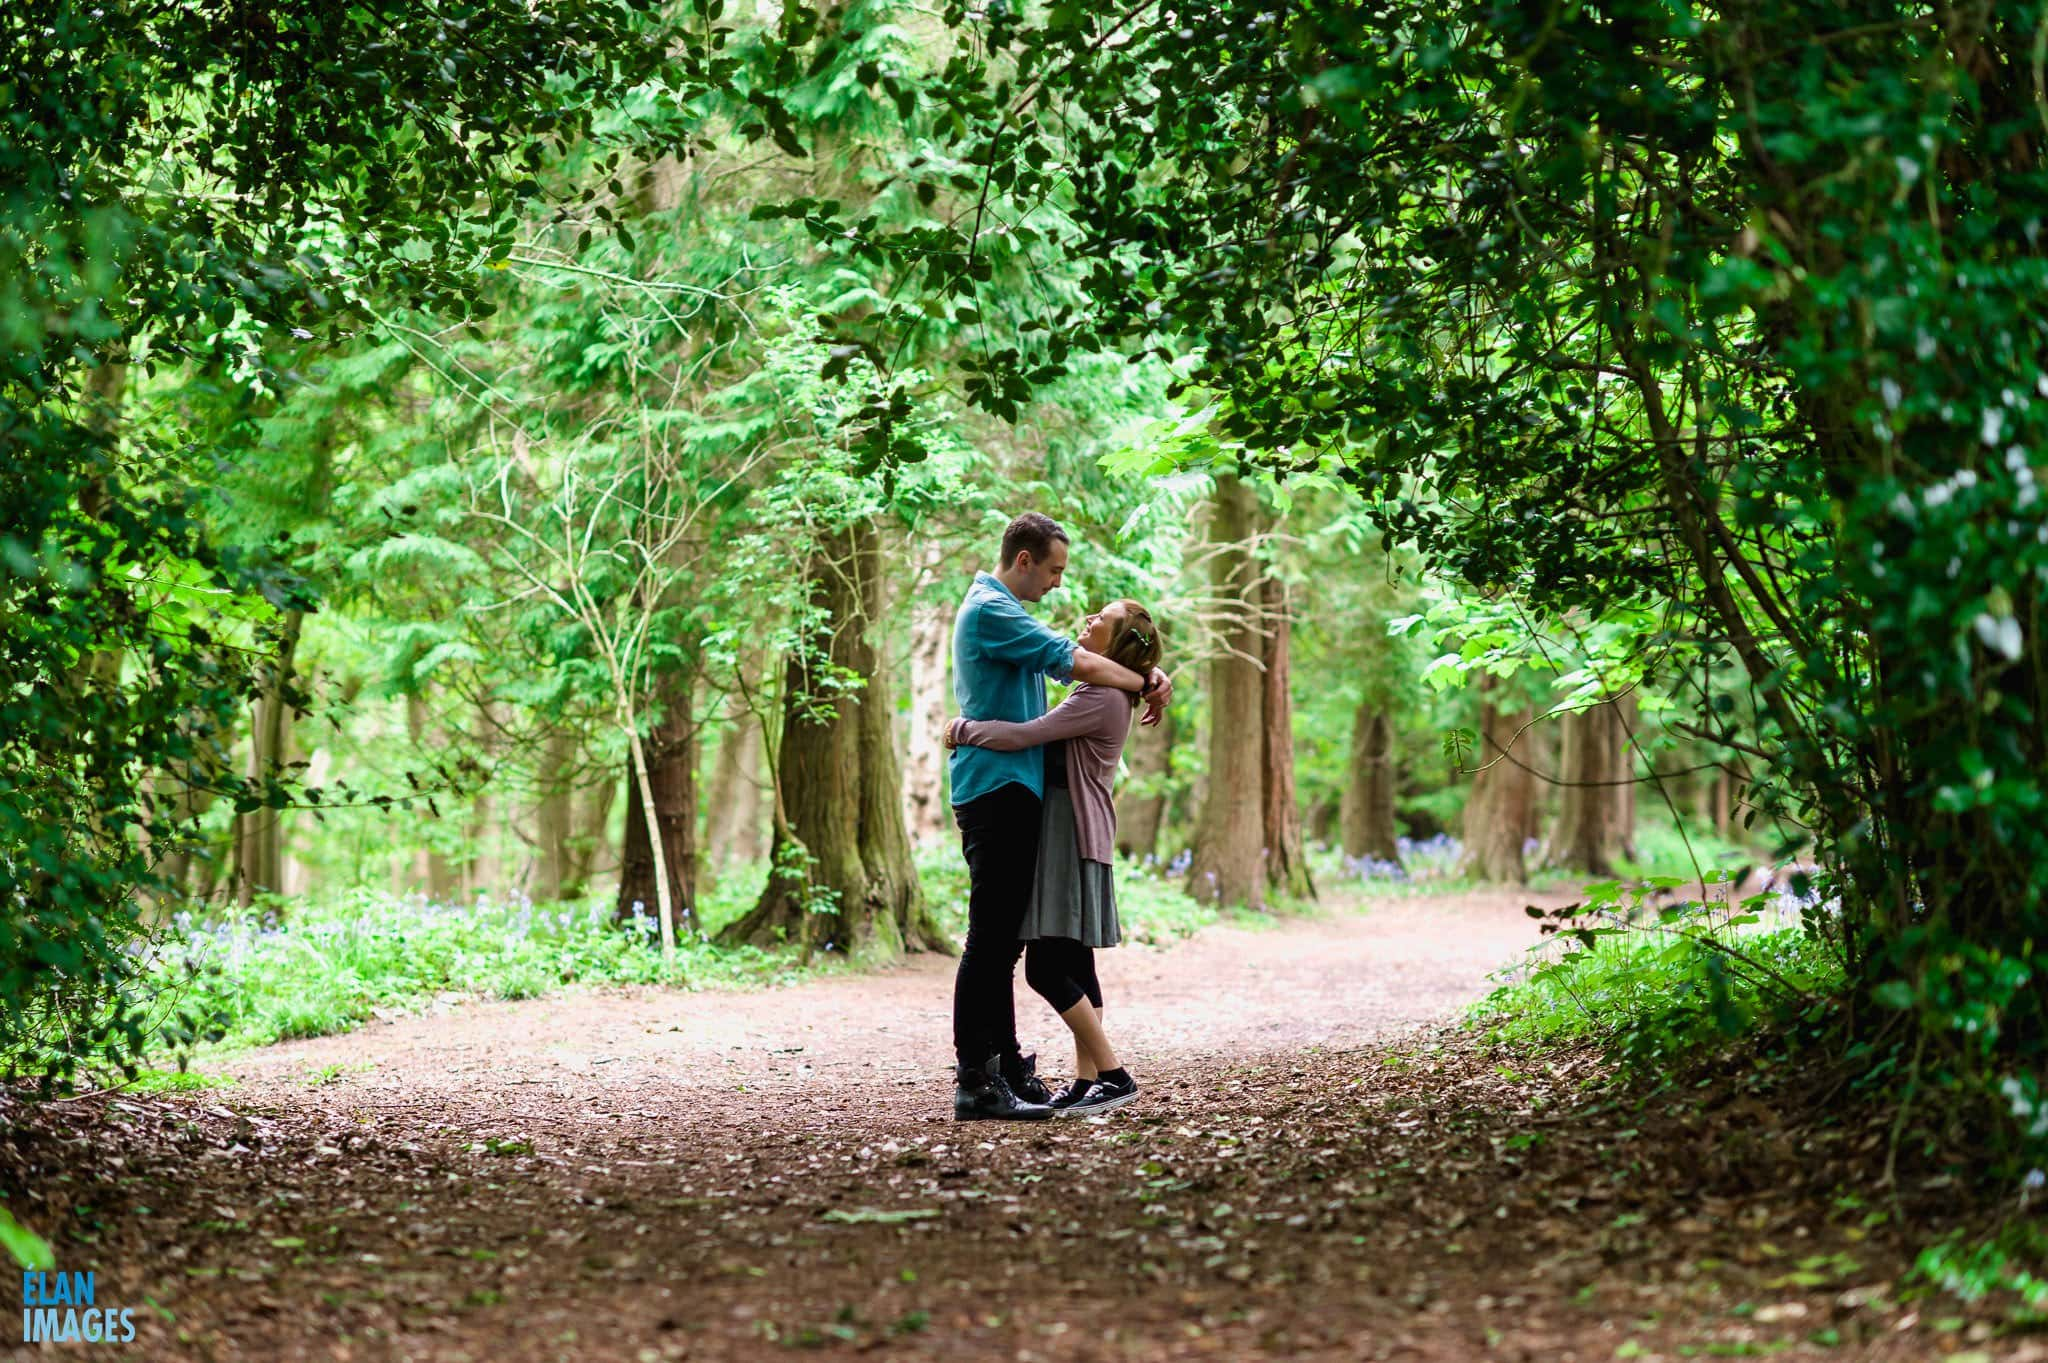 Engagement Photo Shoot in the Bluebell Woods near Bristol 24